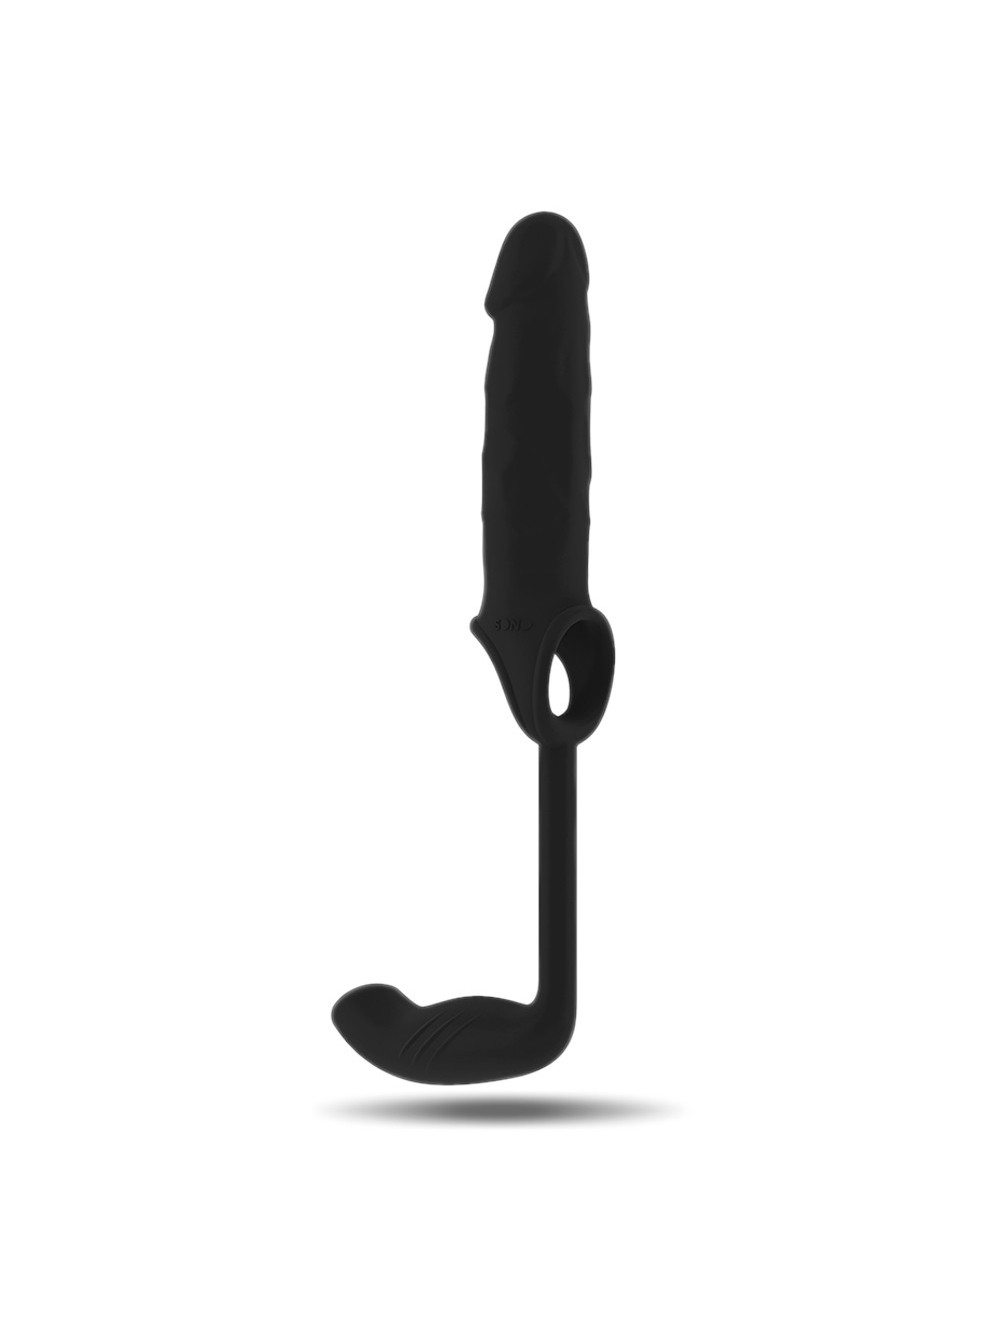 SONO N34 PENIS SLEEVE WITH EXTENSION AND ANAL PLUG BLACK